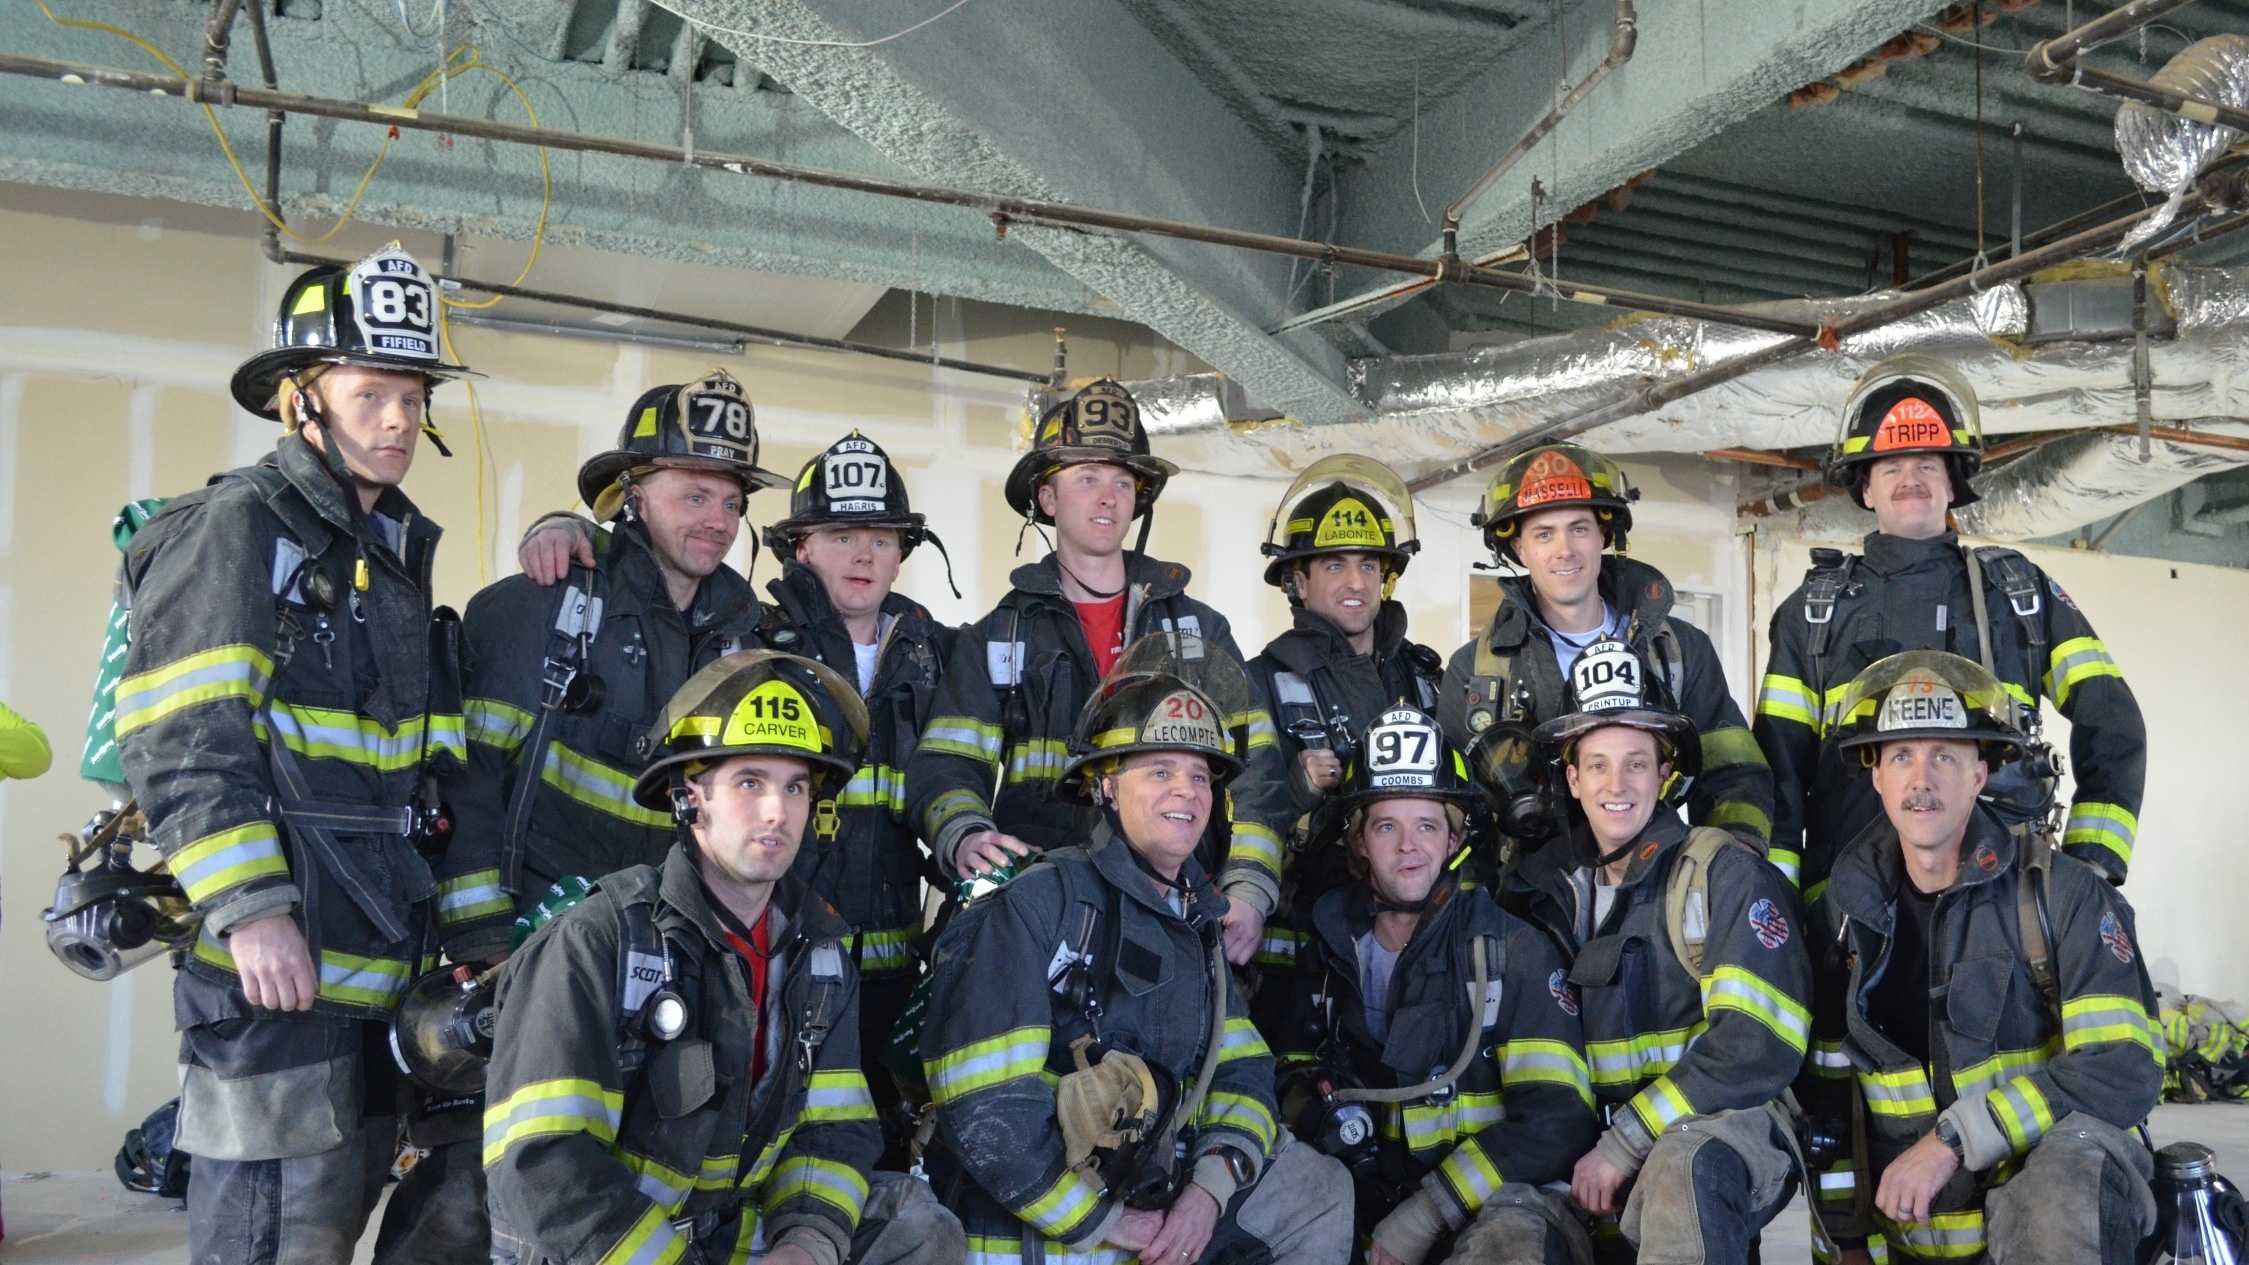 "Firefighters from the Auburn Fire Dept. came in first out of 41 firefighter teams and raised $5,000  at the American Lung Association's Fight for Air Climb held in Boston on Feb. 2. ""Maine's Bravest"" team members are (front, left to right) Justin Carver, Mike Lecompte, Steve Coombs, Tom Printup and Chip Keene, and (back, left to right) Matt Fifield, Scott Pray, Josh Harris, Ryan Demers, Josh LaBonte, Dan Masselli and Mark Tripp."